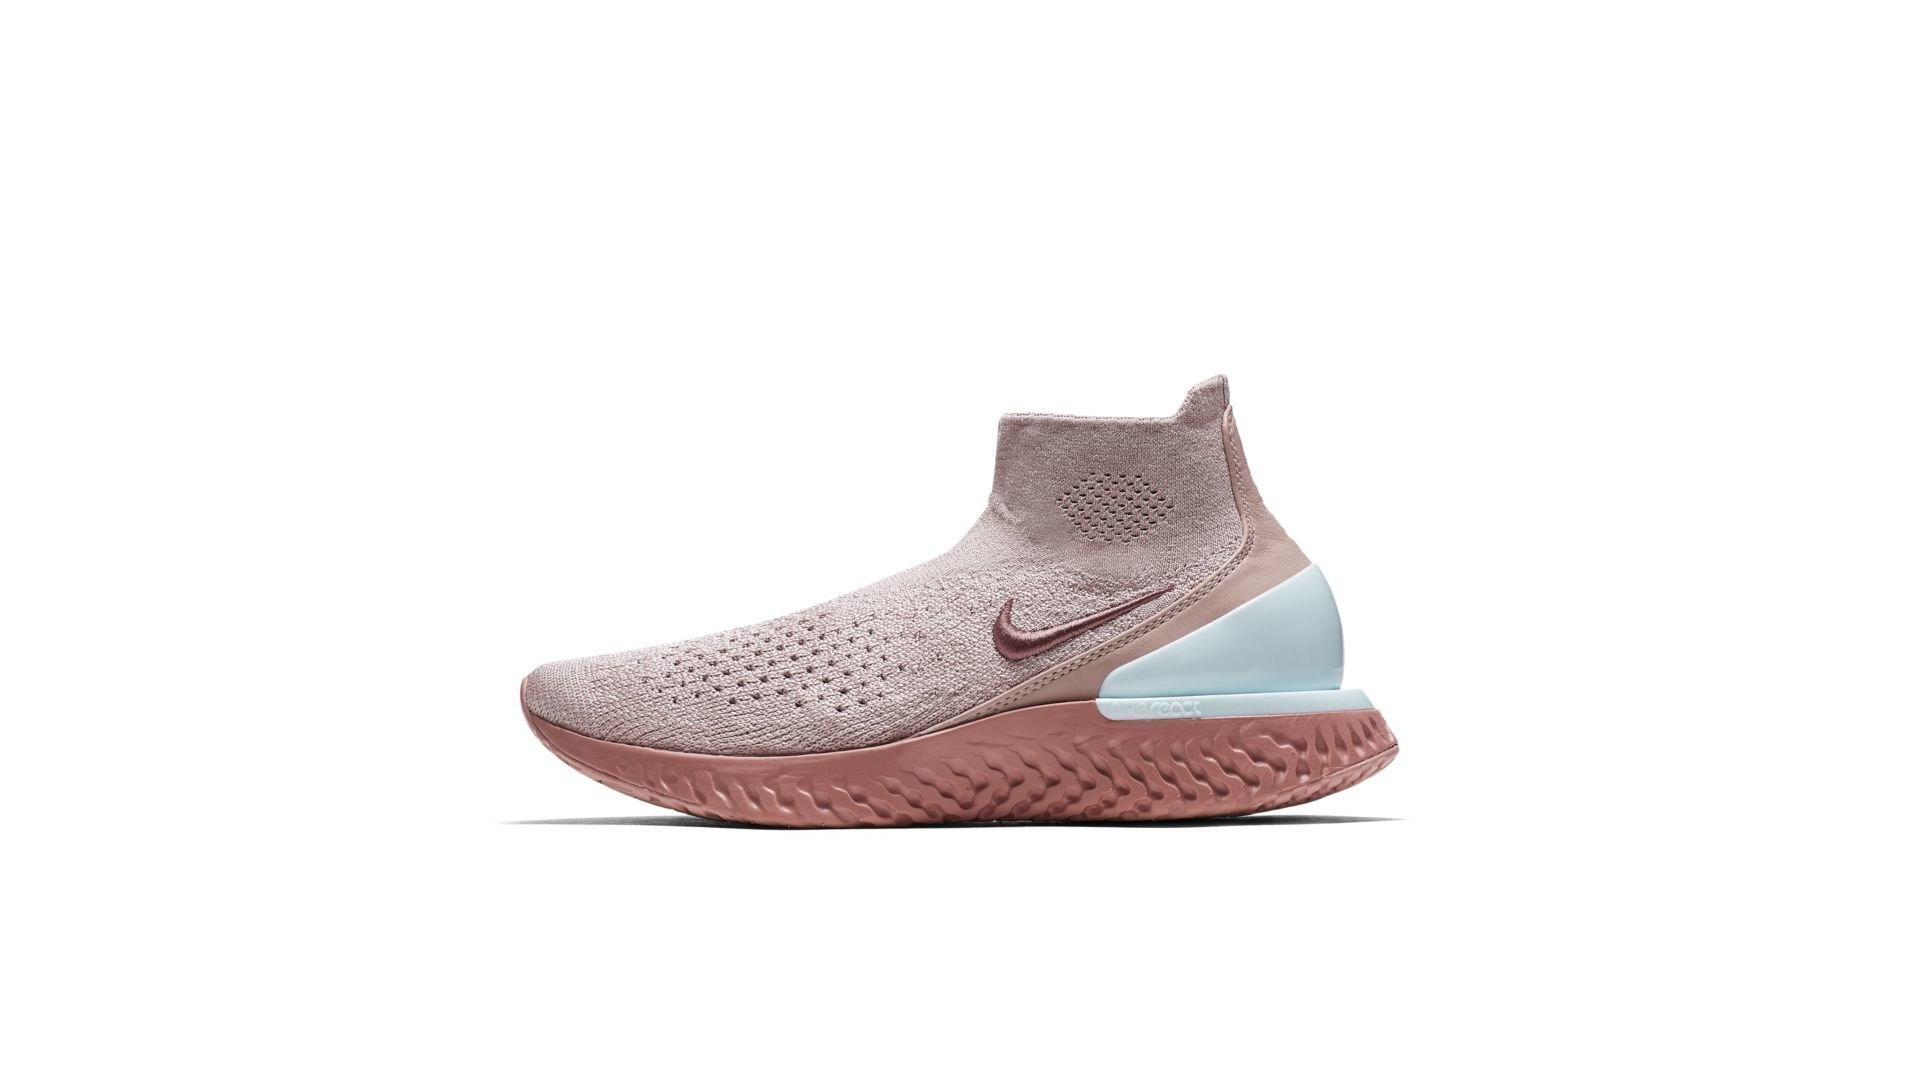 Nike Rise React Flyknit Diffused Taupe (W) (AV5553-226)